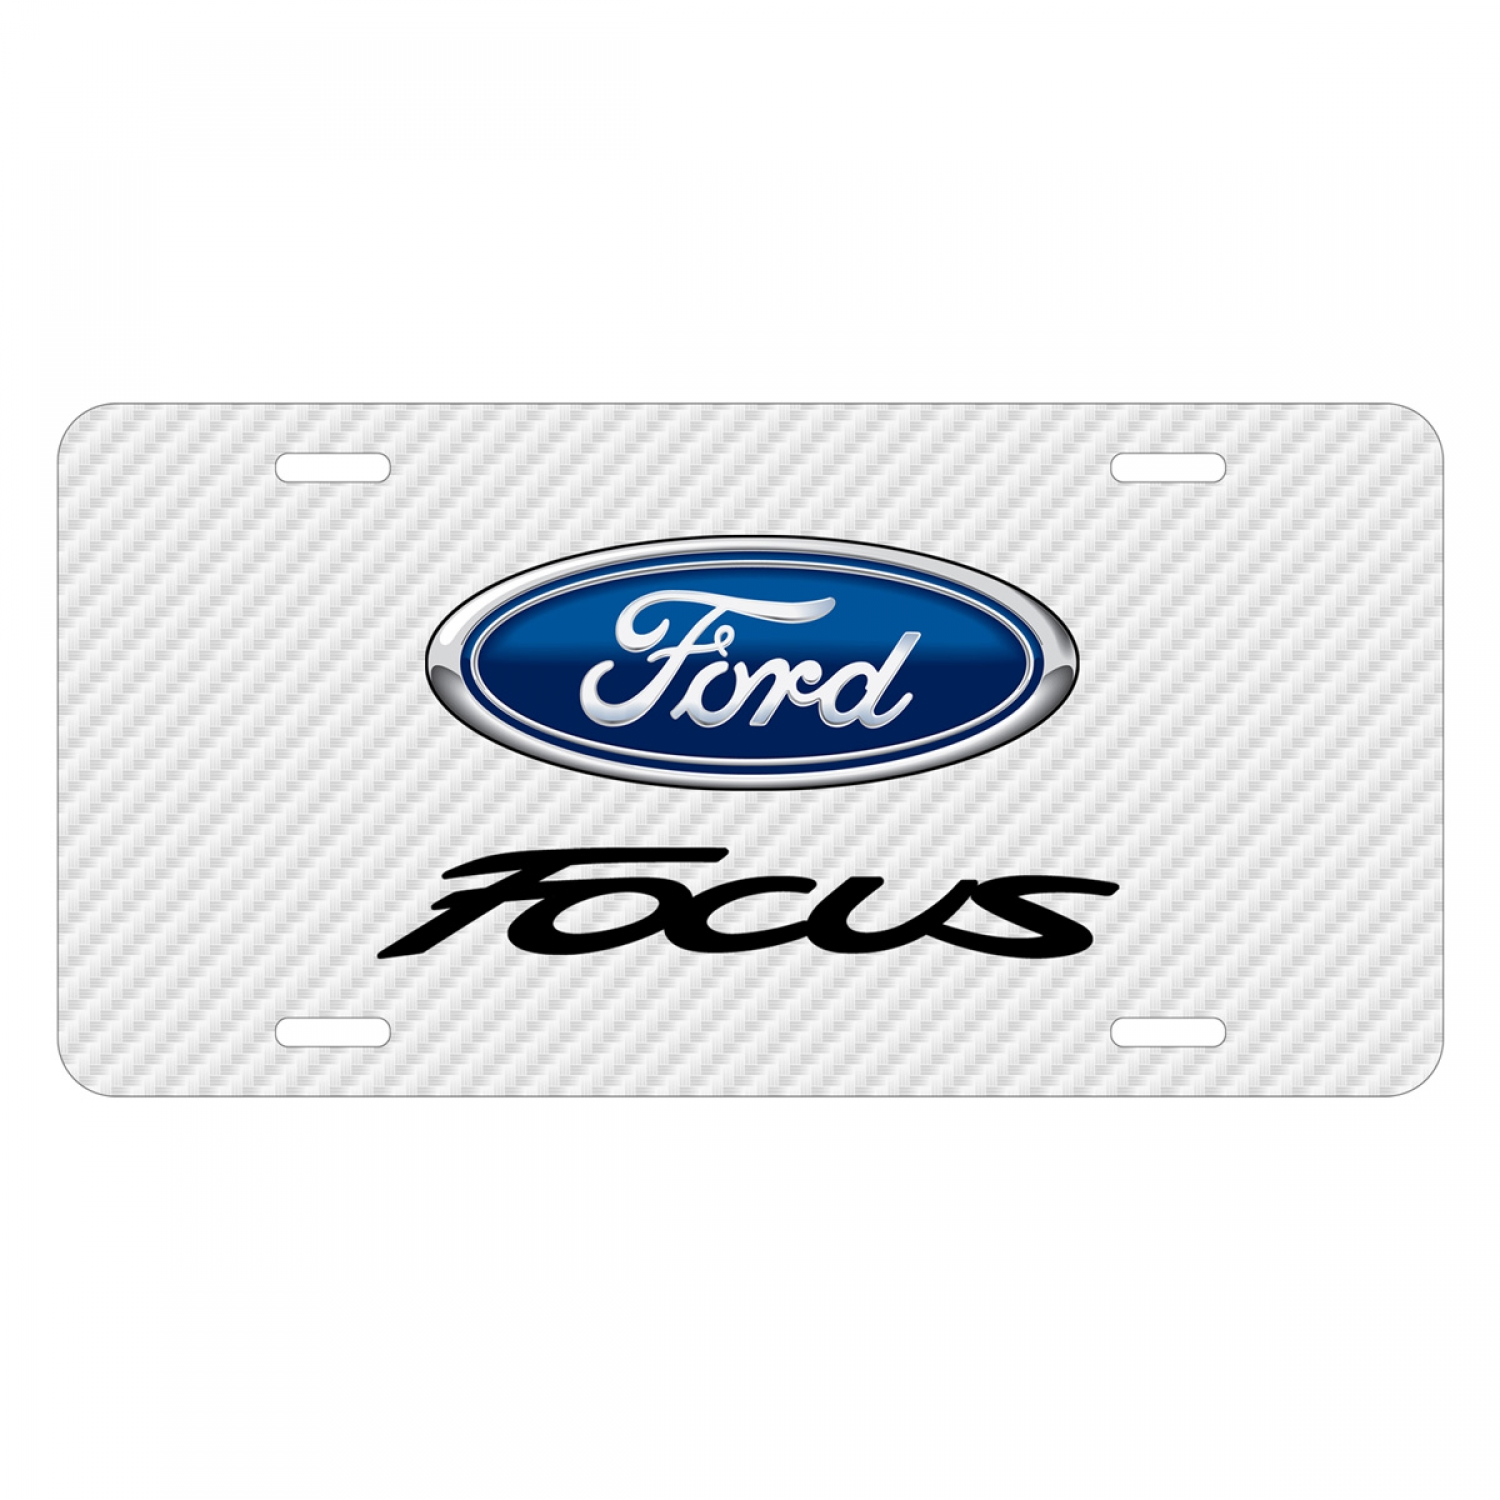 Ford Focus White Carbon Fiber Texture Graphic UV Metal License Plate